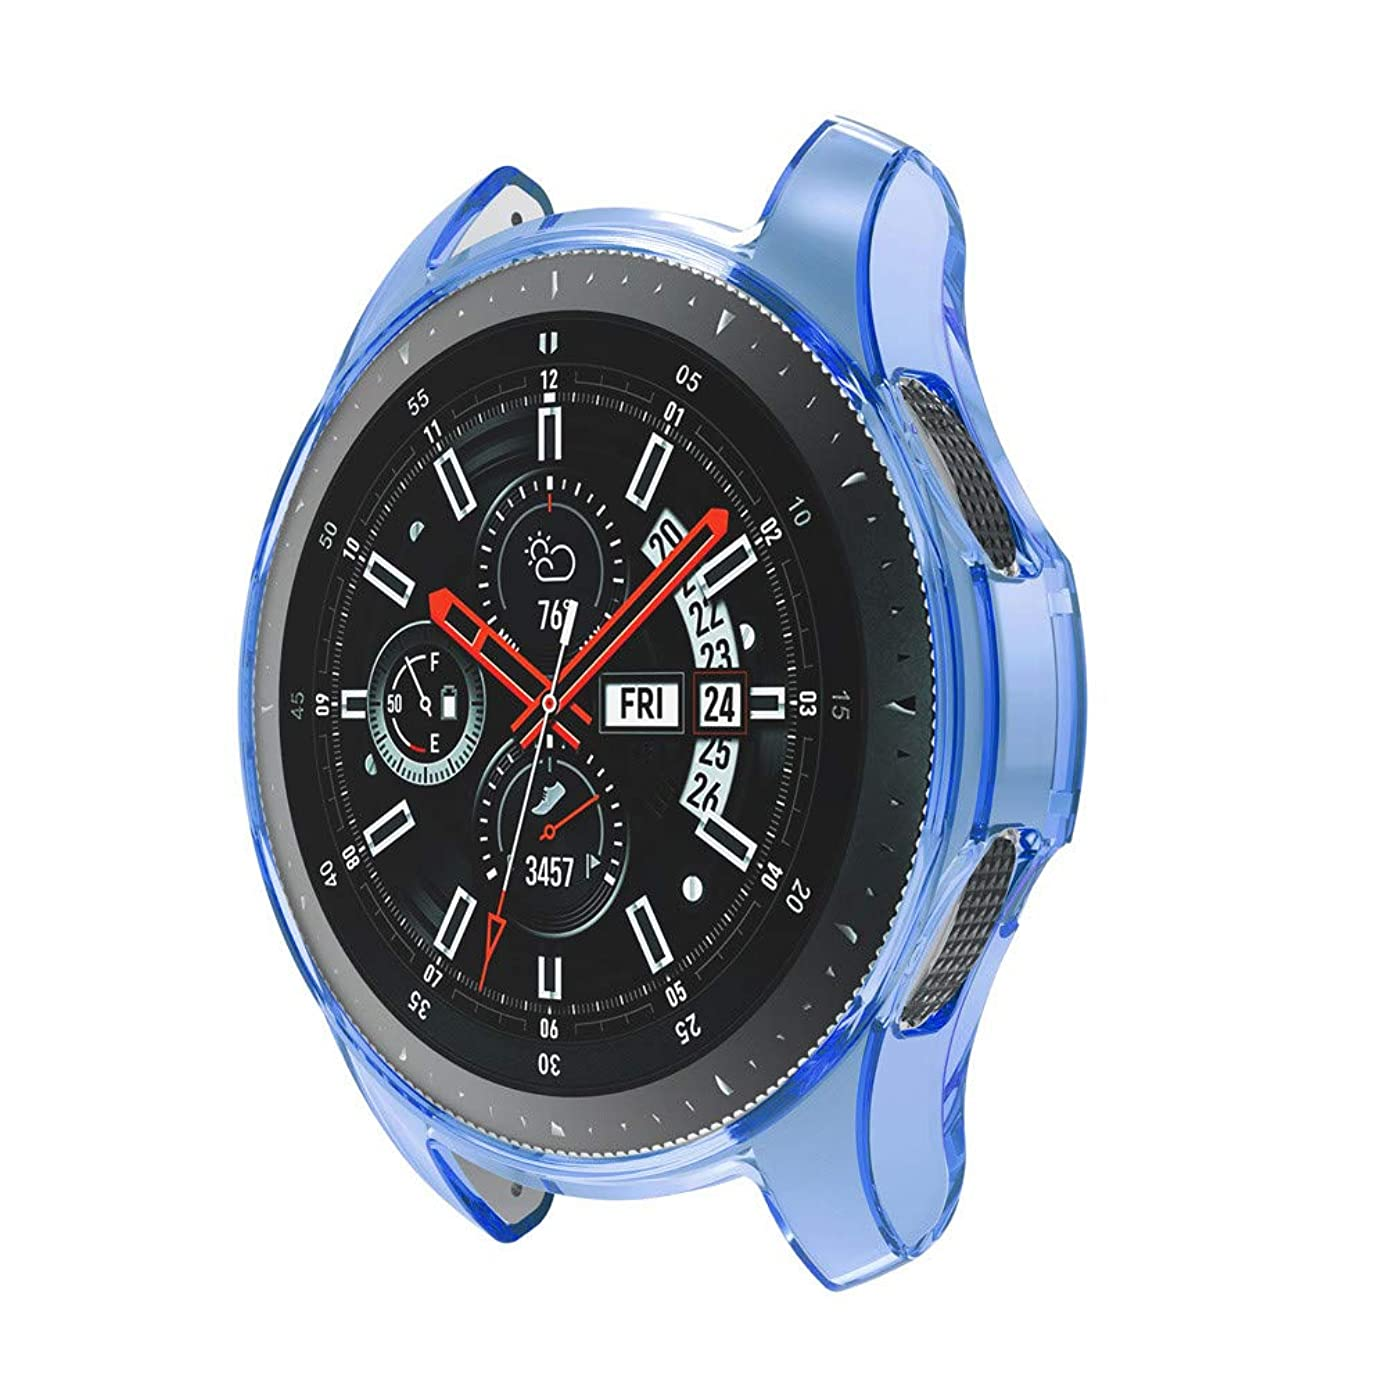 ZTY66 Galaxy Watch 46MM Case, Silicone Shock-Proof and Protector Cover Compatible for Samsung Galaxy Watch 46MM (2019) (Blue)